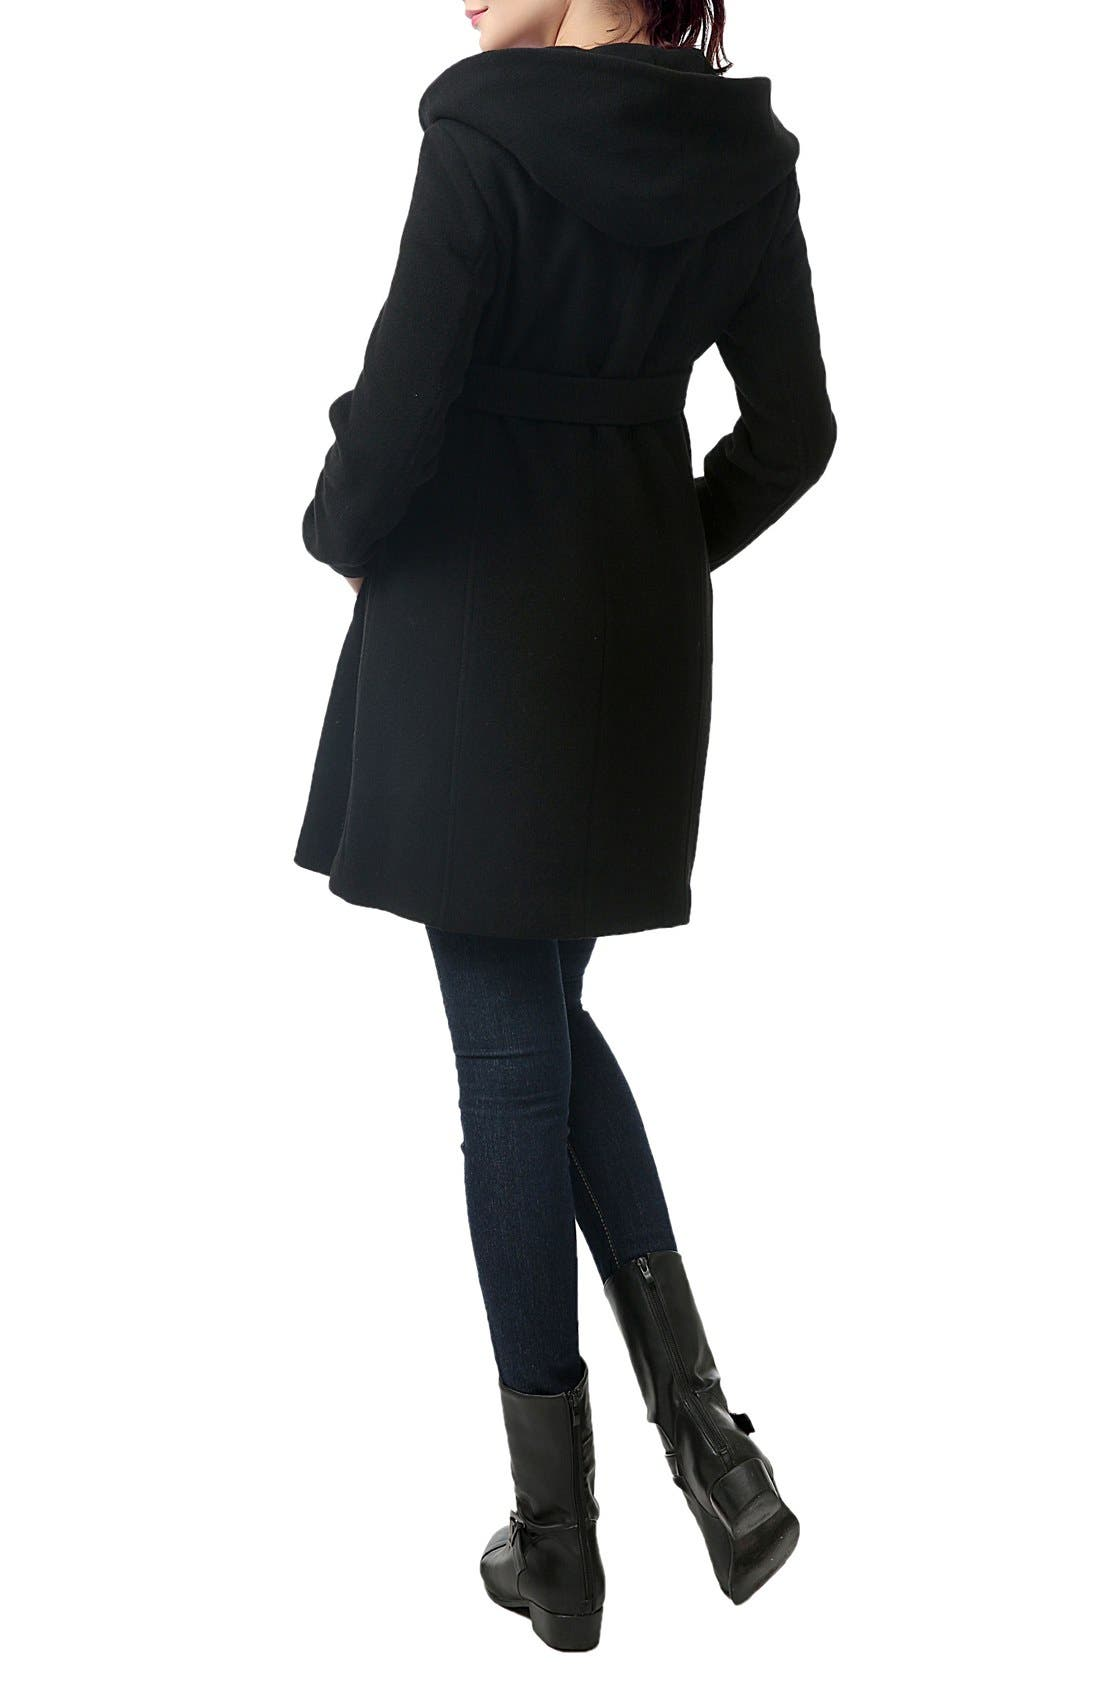 KIMI AND KAI,                             'Lora' Wool Blend Maternity Coat,                             Alternate thumbnail 2, color,                             BLACK